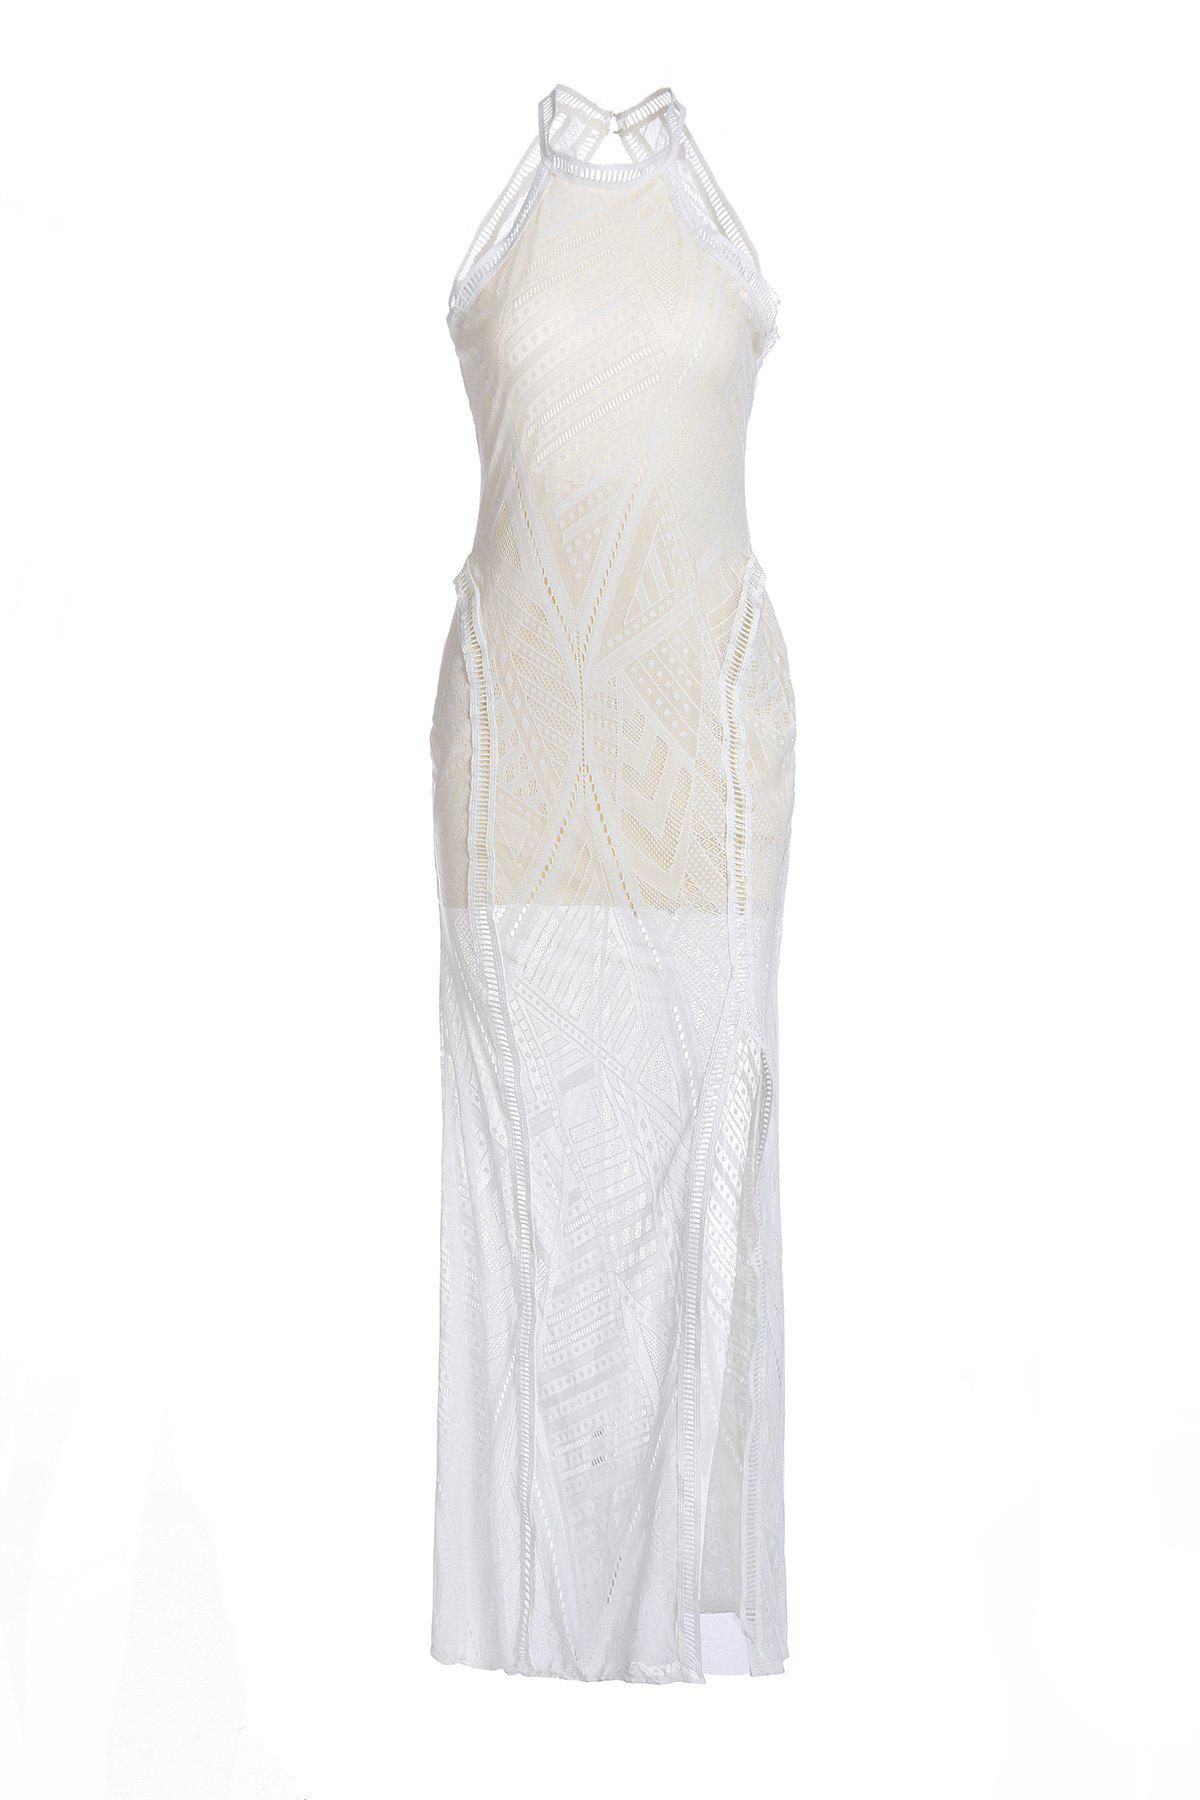 Sexy Jewel Neck Sleeveless Open Back Solid Color Women's Slit Dress - WHITE ONE SIZE(FIT SIZE XS TO M)